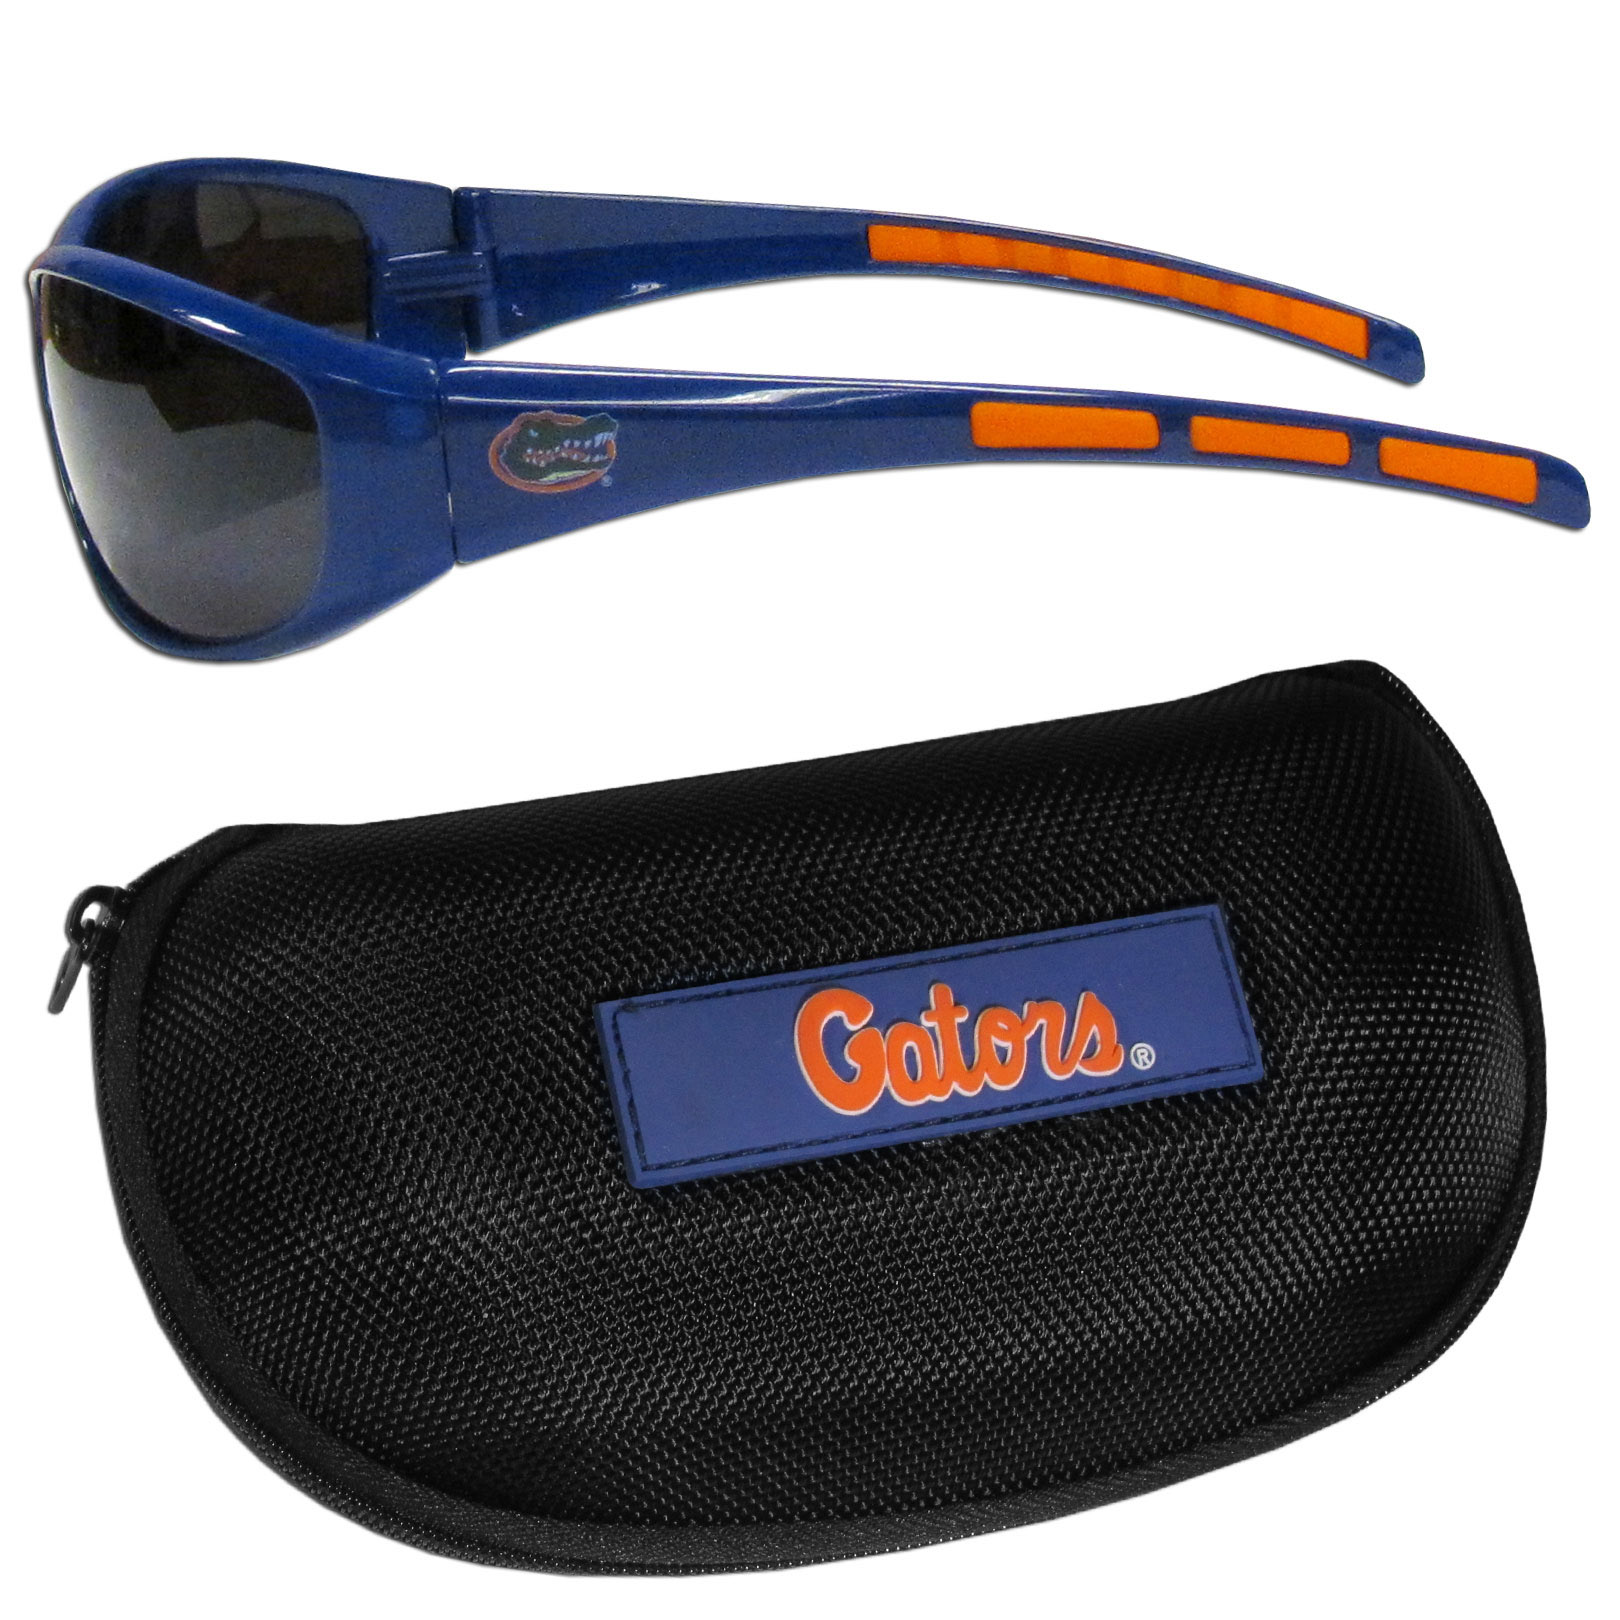 Florida Gators Wrap Sunglass and Case Set - This great set includes a high quality pair of Florida Gators wrap sunglasses and hard carrying case.